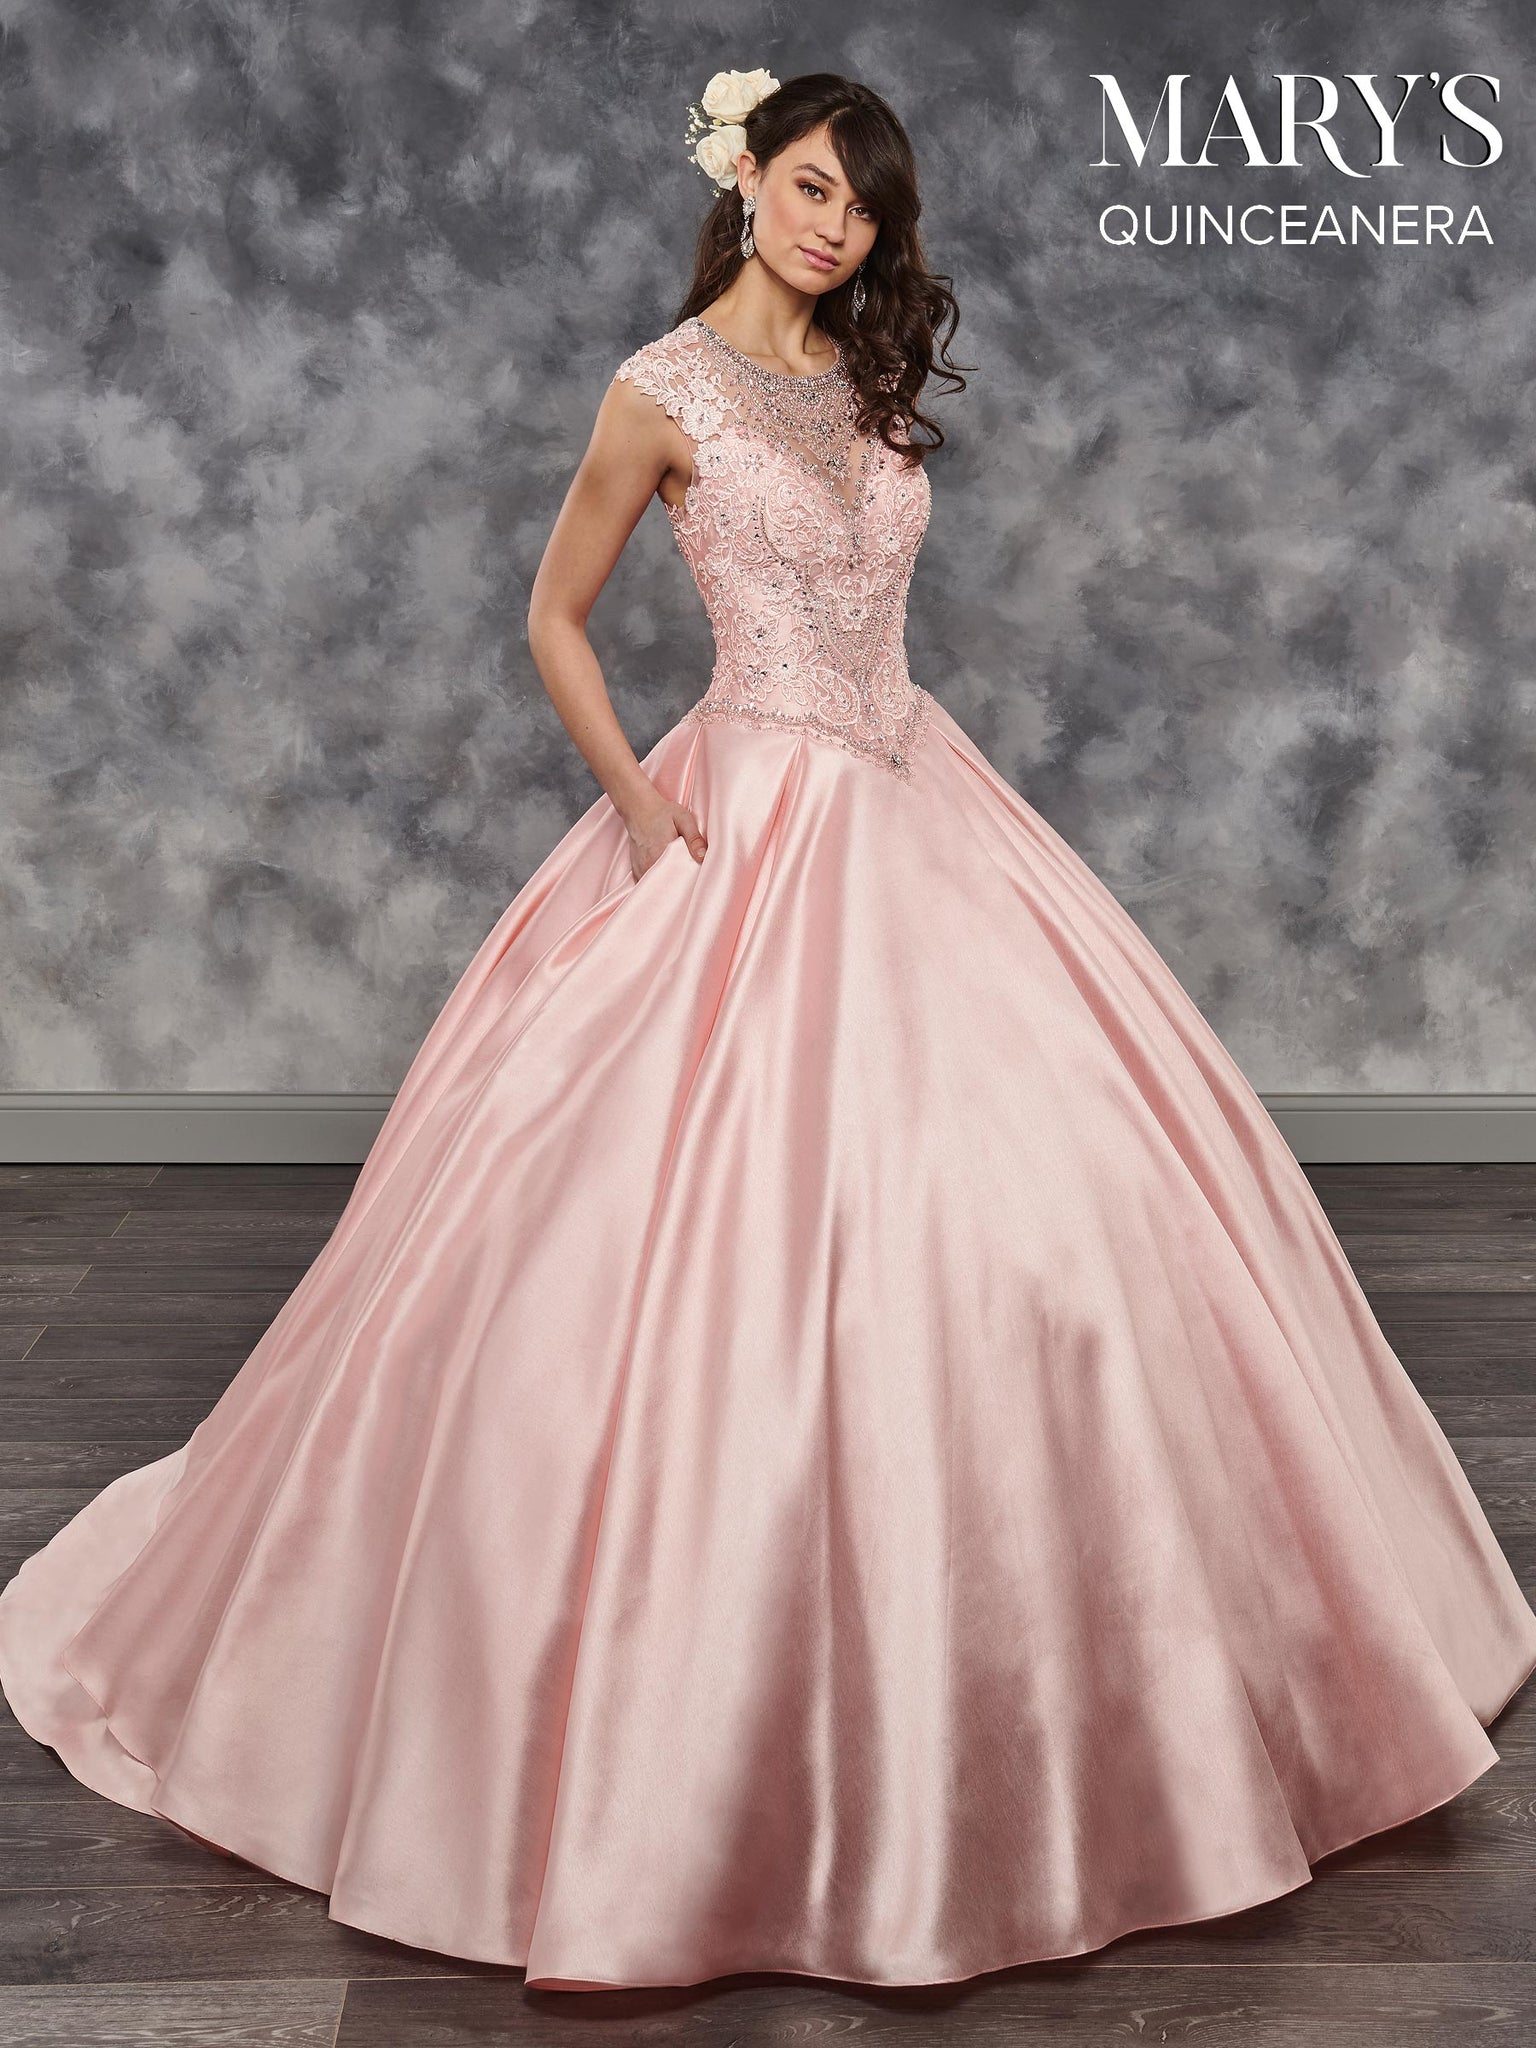 MQ2025 - Concepcion Bridal & Quinceañera Boutique